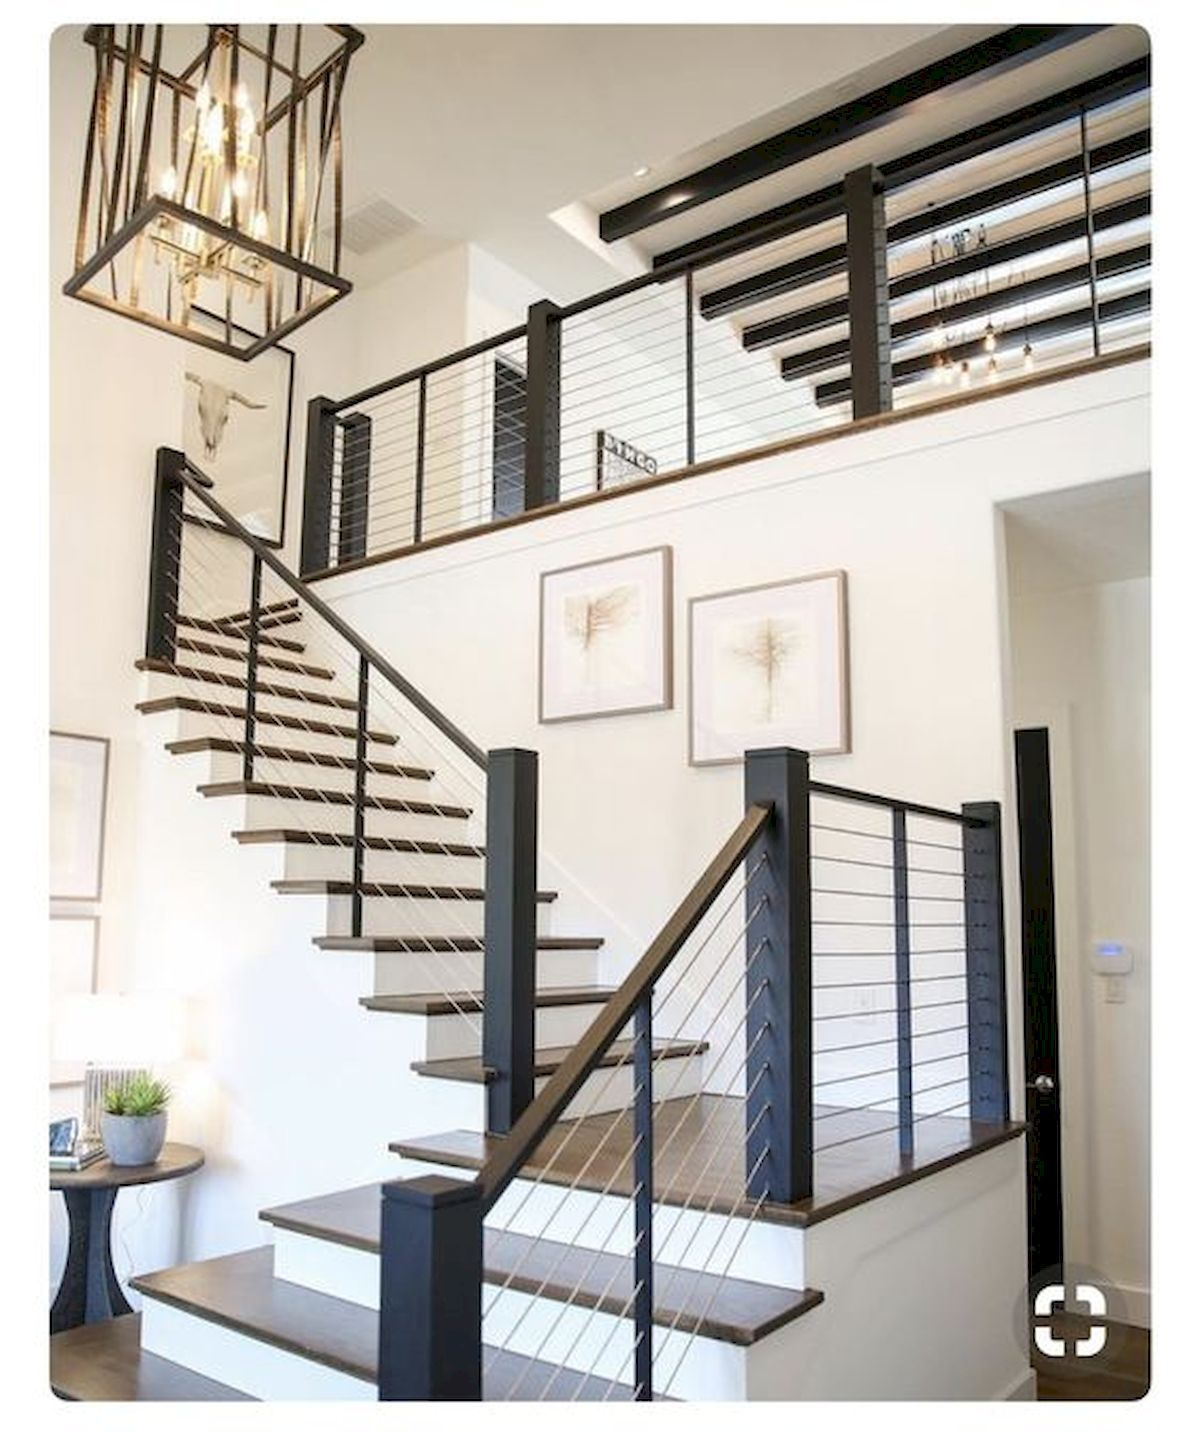 33 Ultimate Farmhouse Staircase Decor Ideas And Design (1)33DECOR